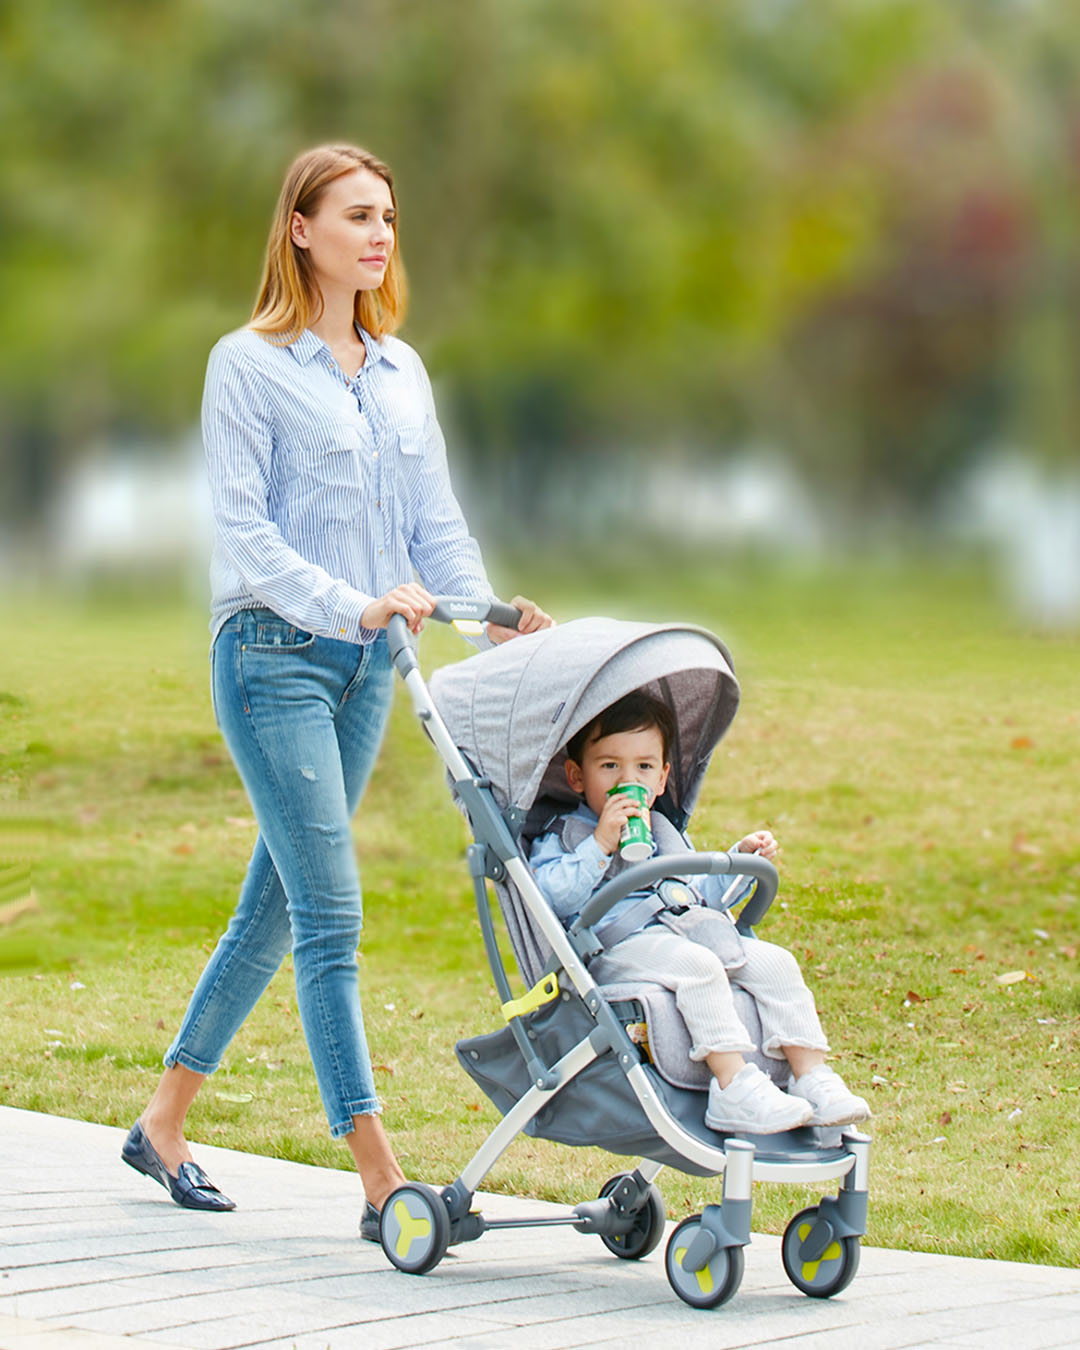 BeBehoo lightweight stroller can sitting & lying folding stroller ultra-light portable Traveling baby stroller